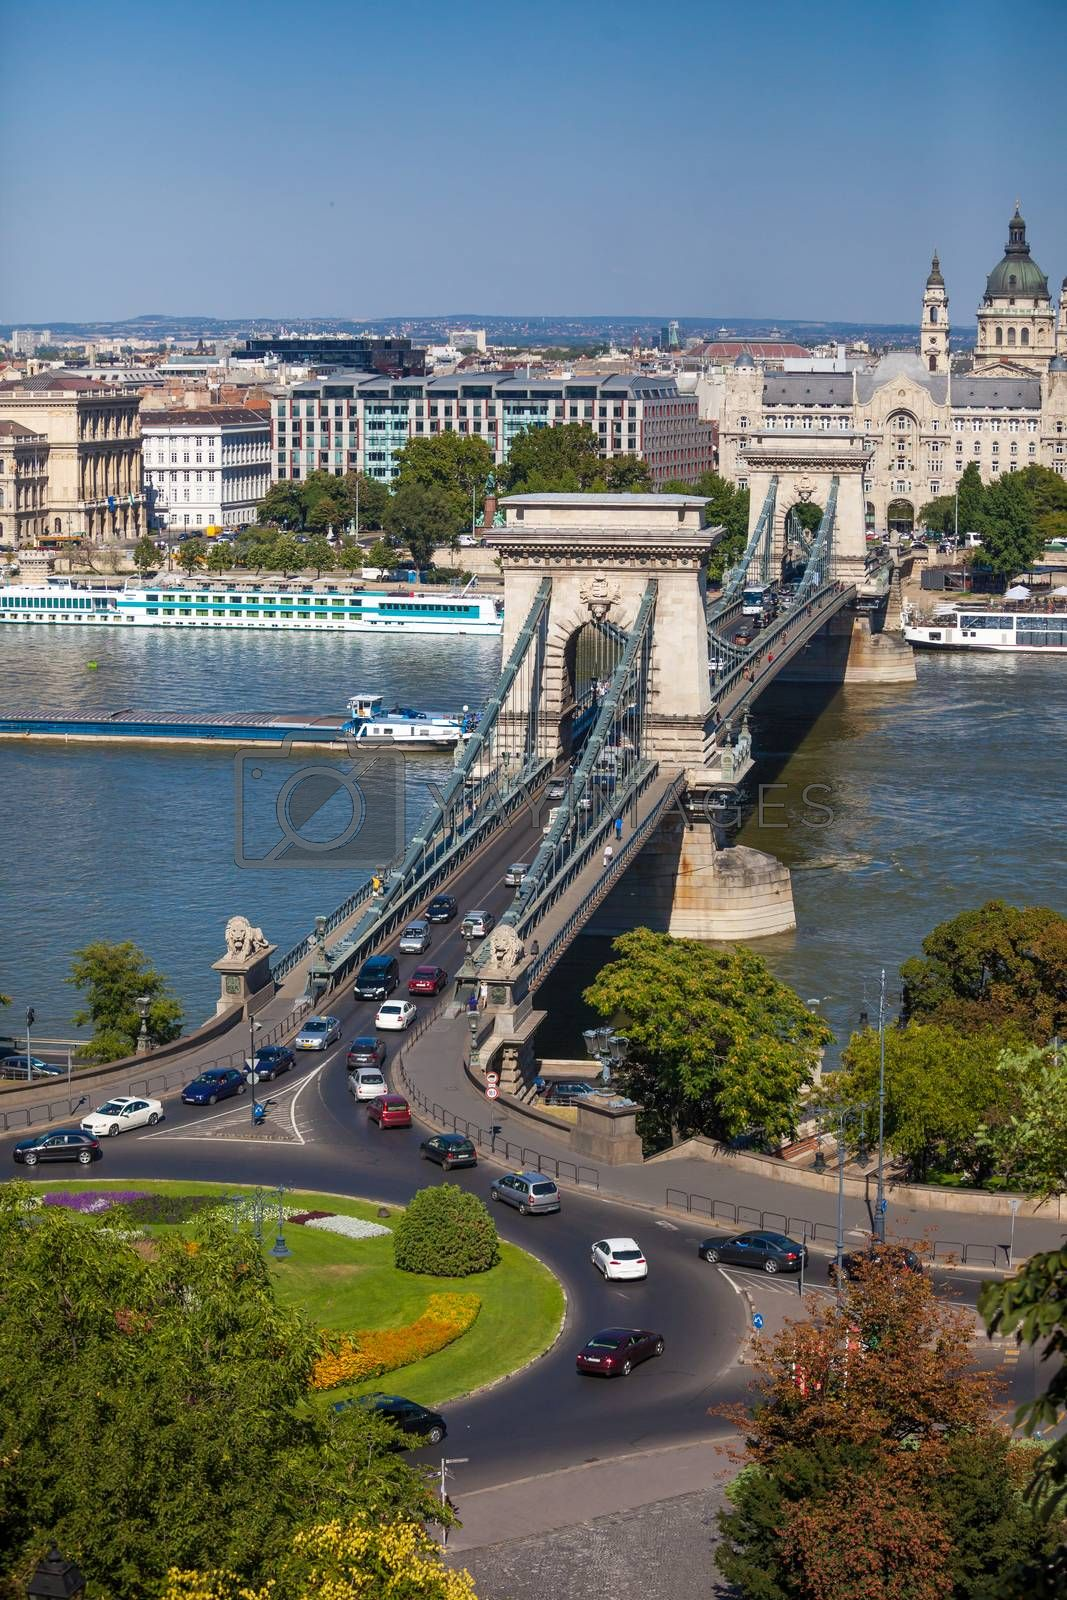 Royalty free image of View of Szechenyi Chain Bridge on August 2, 2013 in Budapest by PixAchi